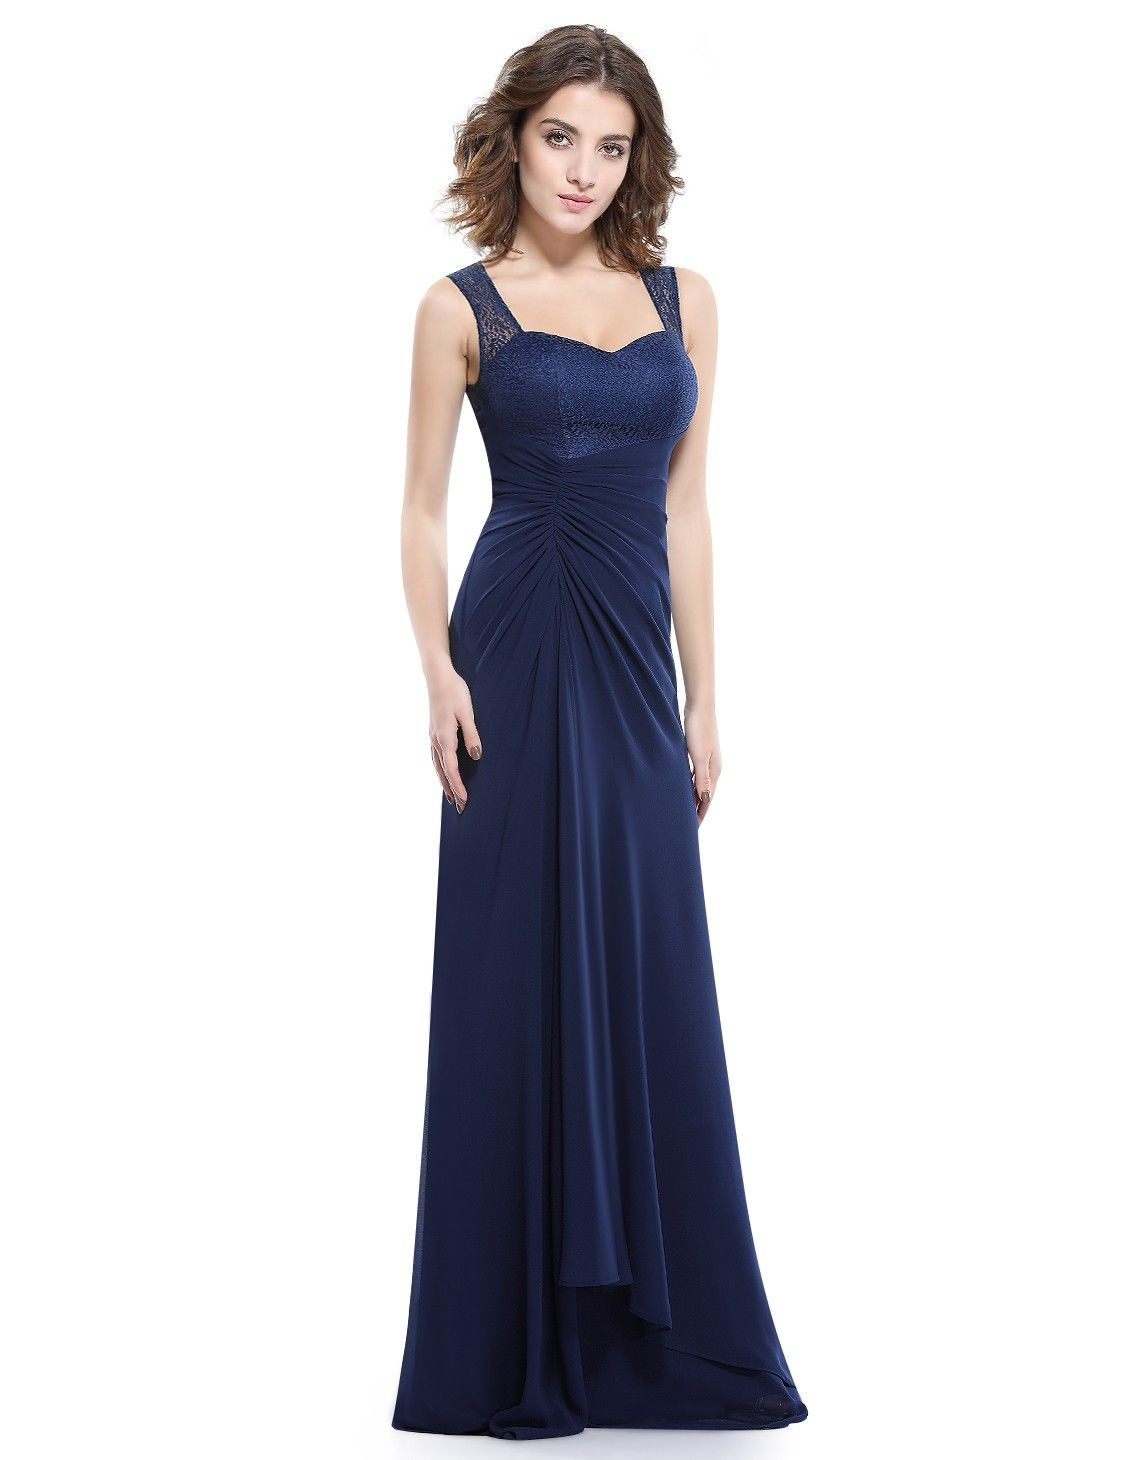 Party Kleid Abendkleid A-Linie in Dunkelblau Elegant | Damenmode ...